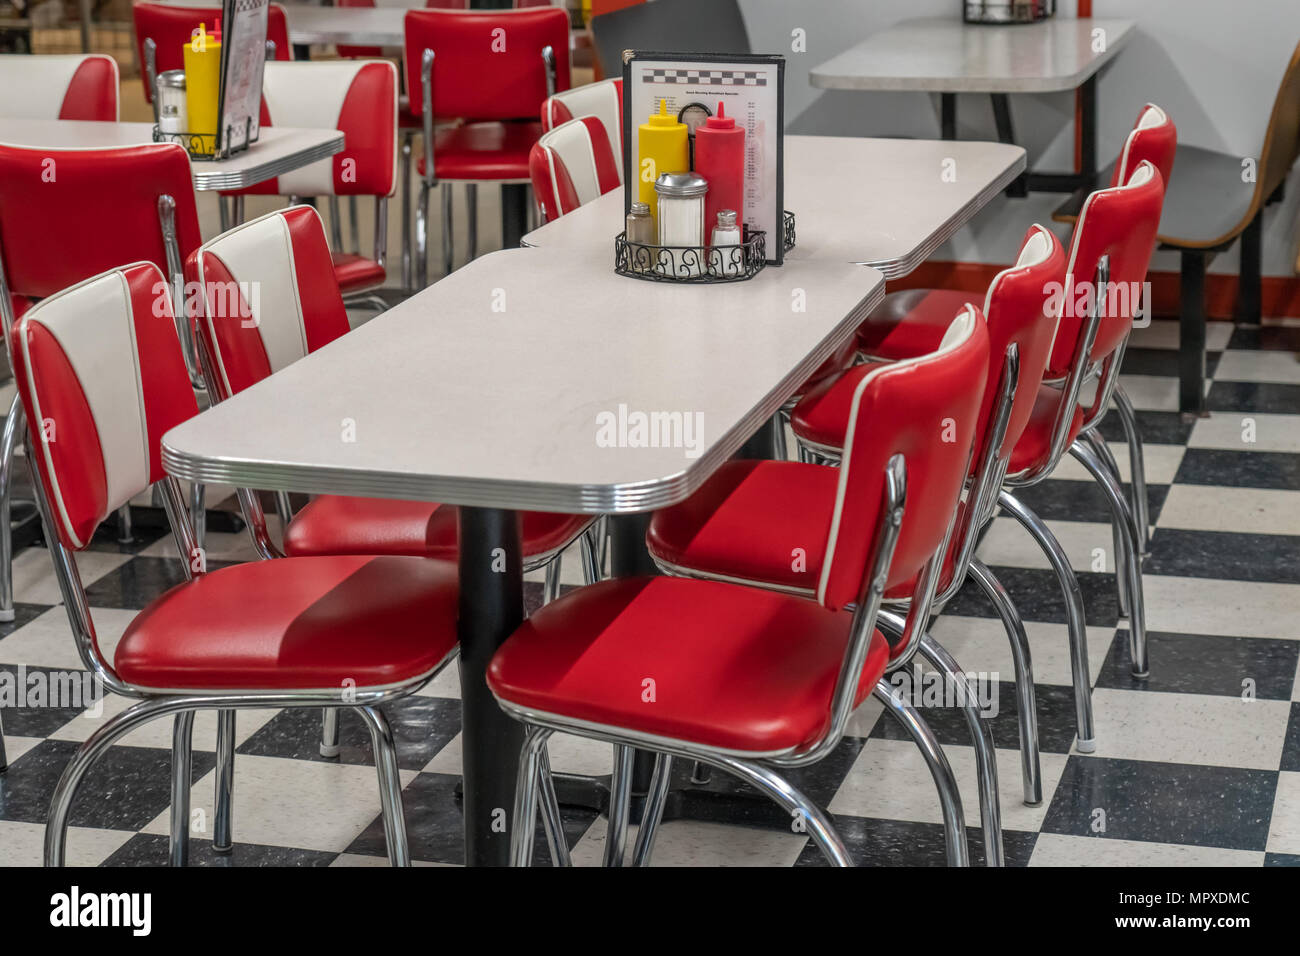 50s style diner with black and white tile floor red vinyl chairs and laminate and chrome tables & 50s style diner with black and white tile floor red vinyl chairs ...